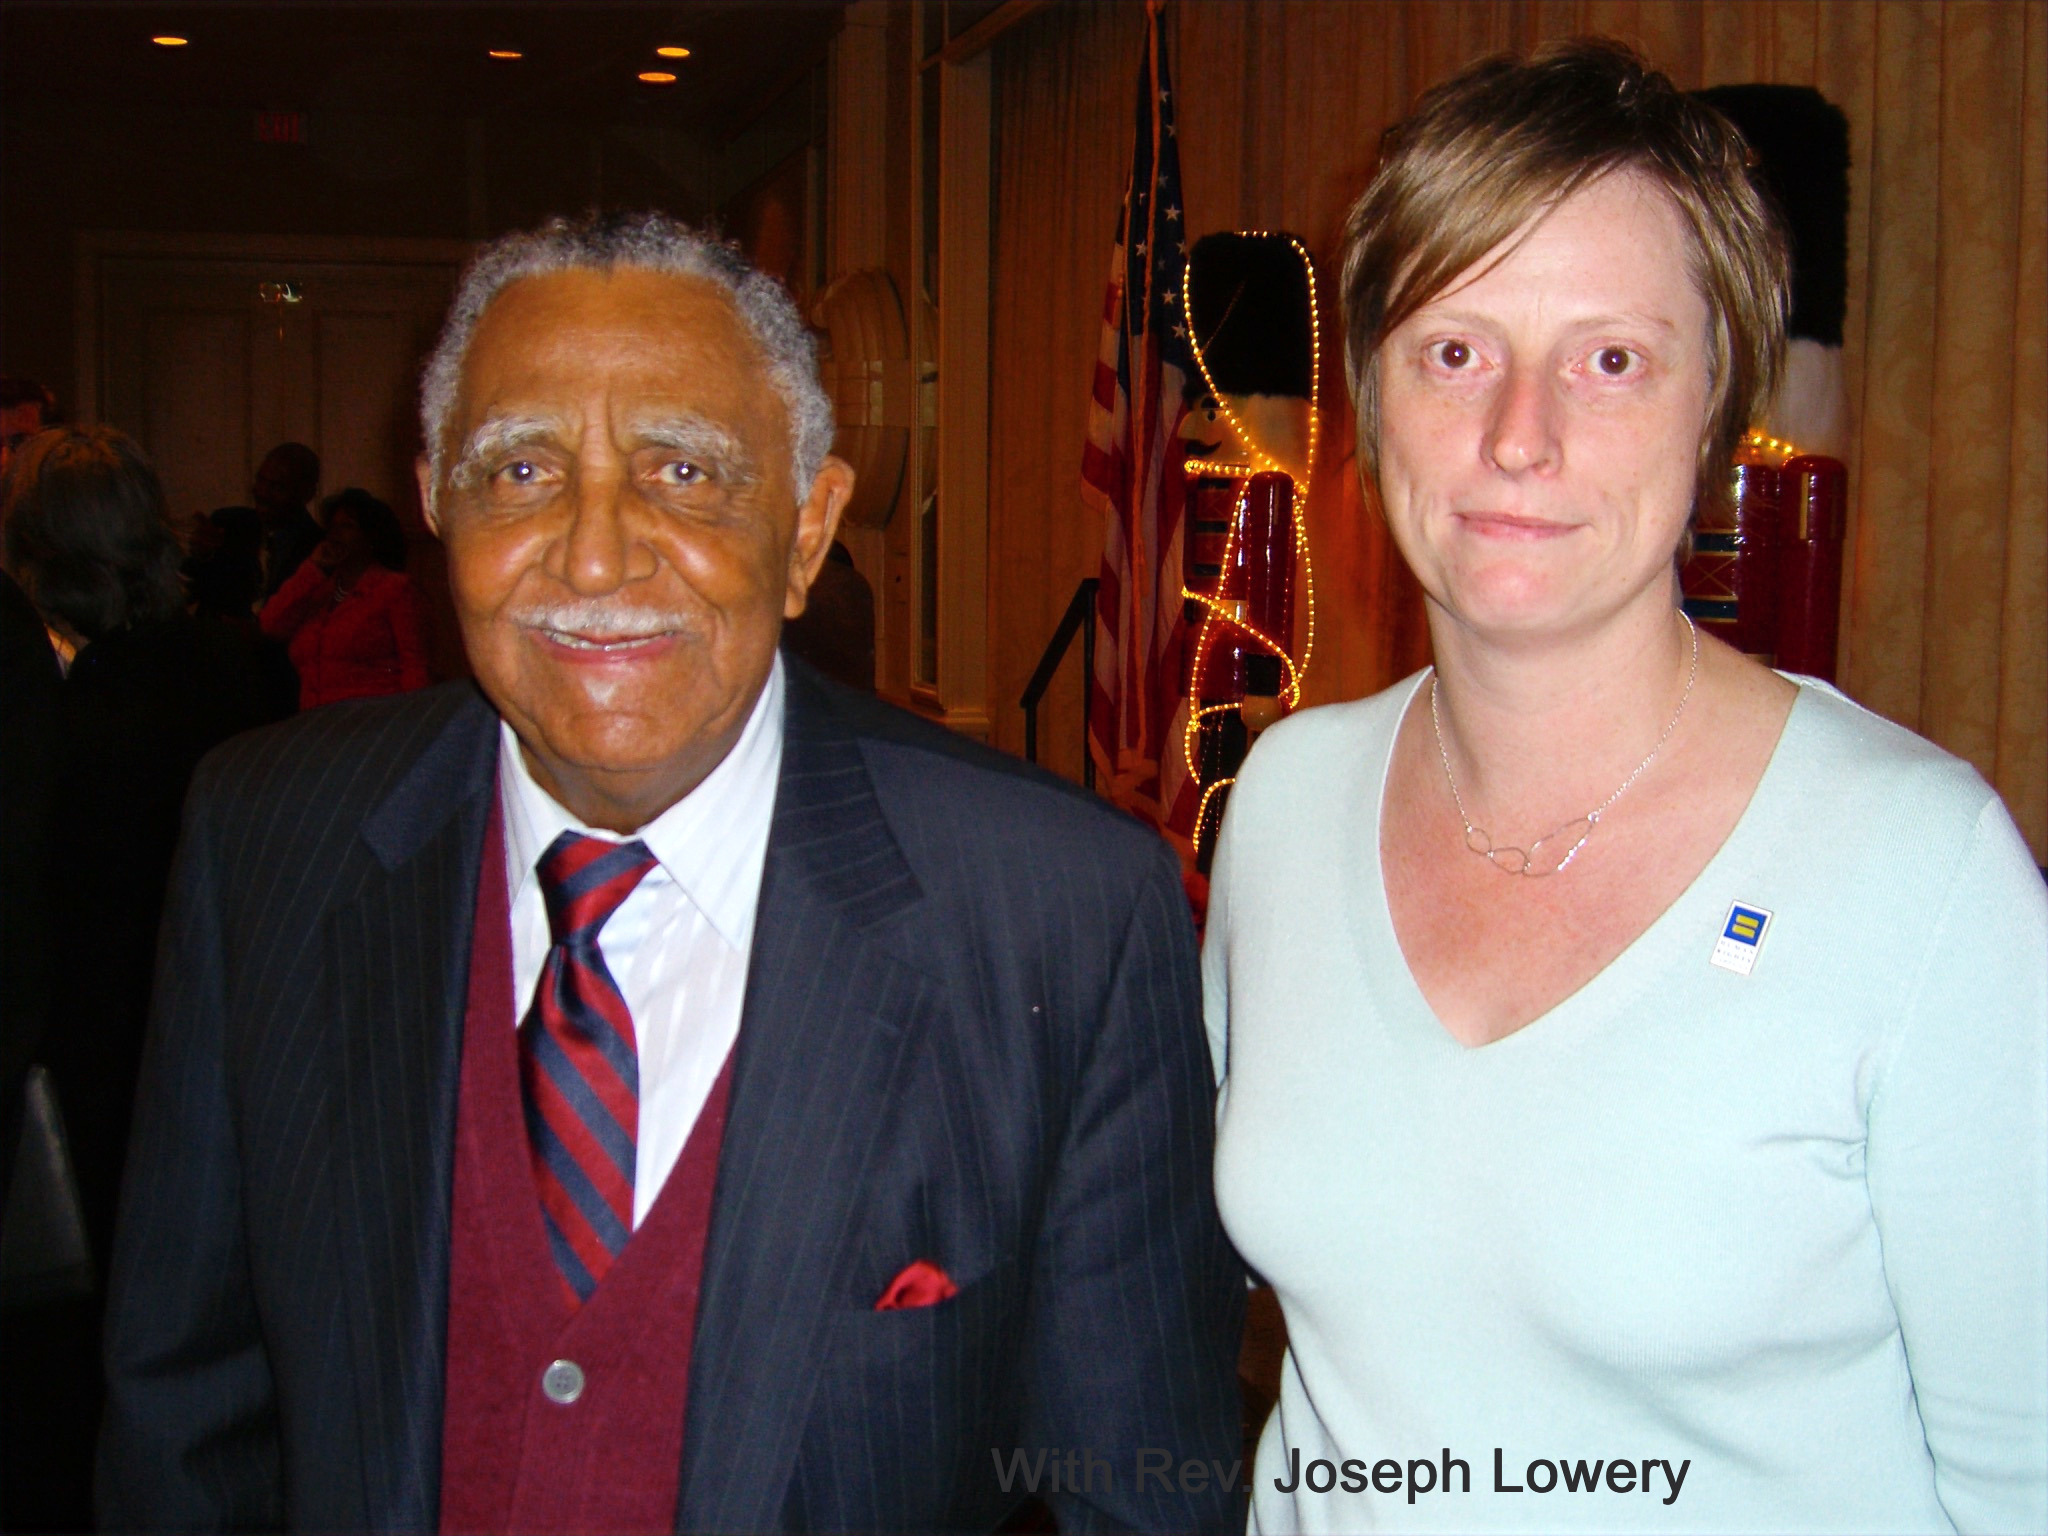 Rev Joseph Lowery